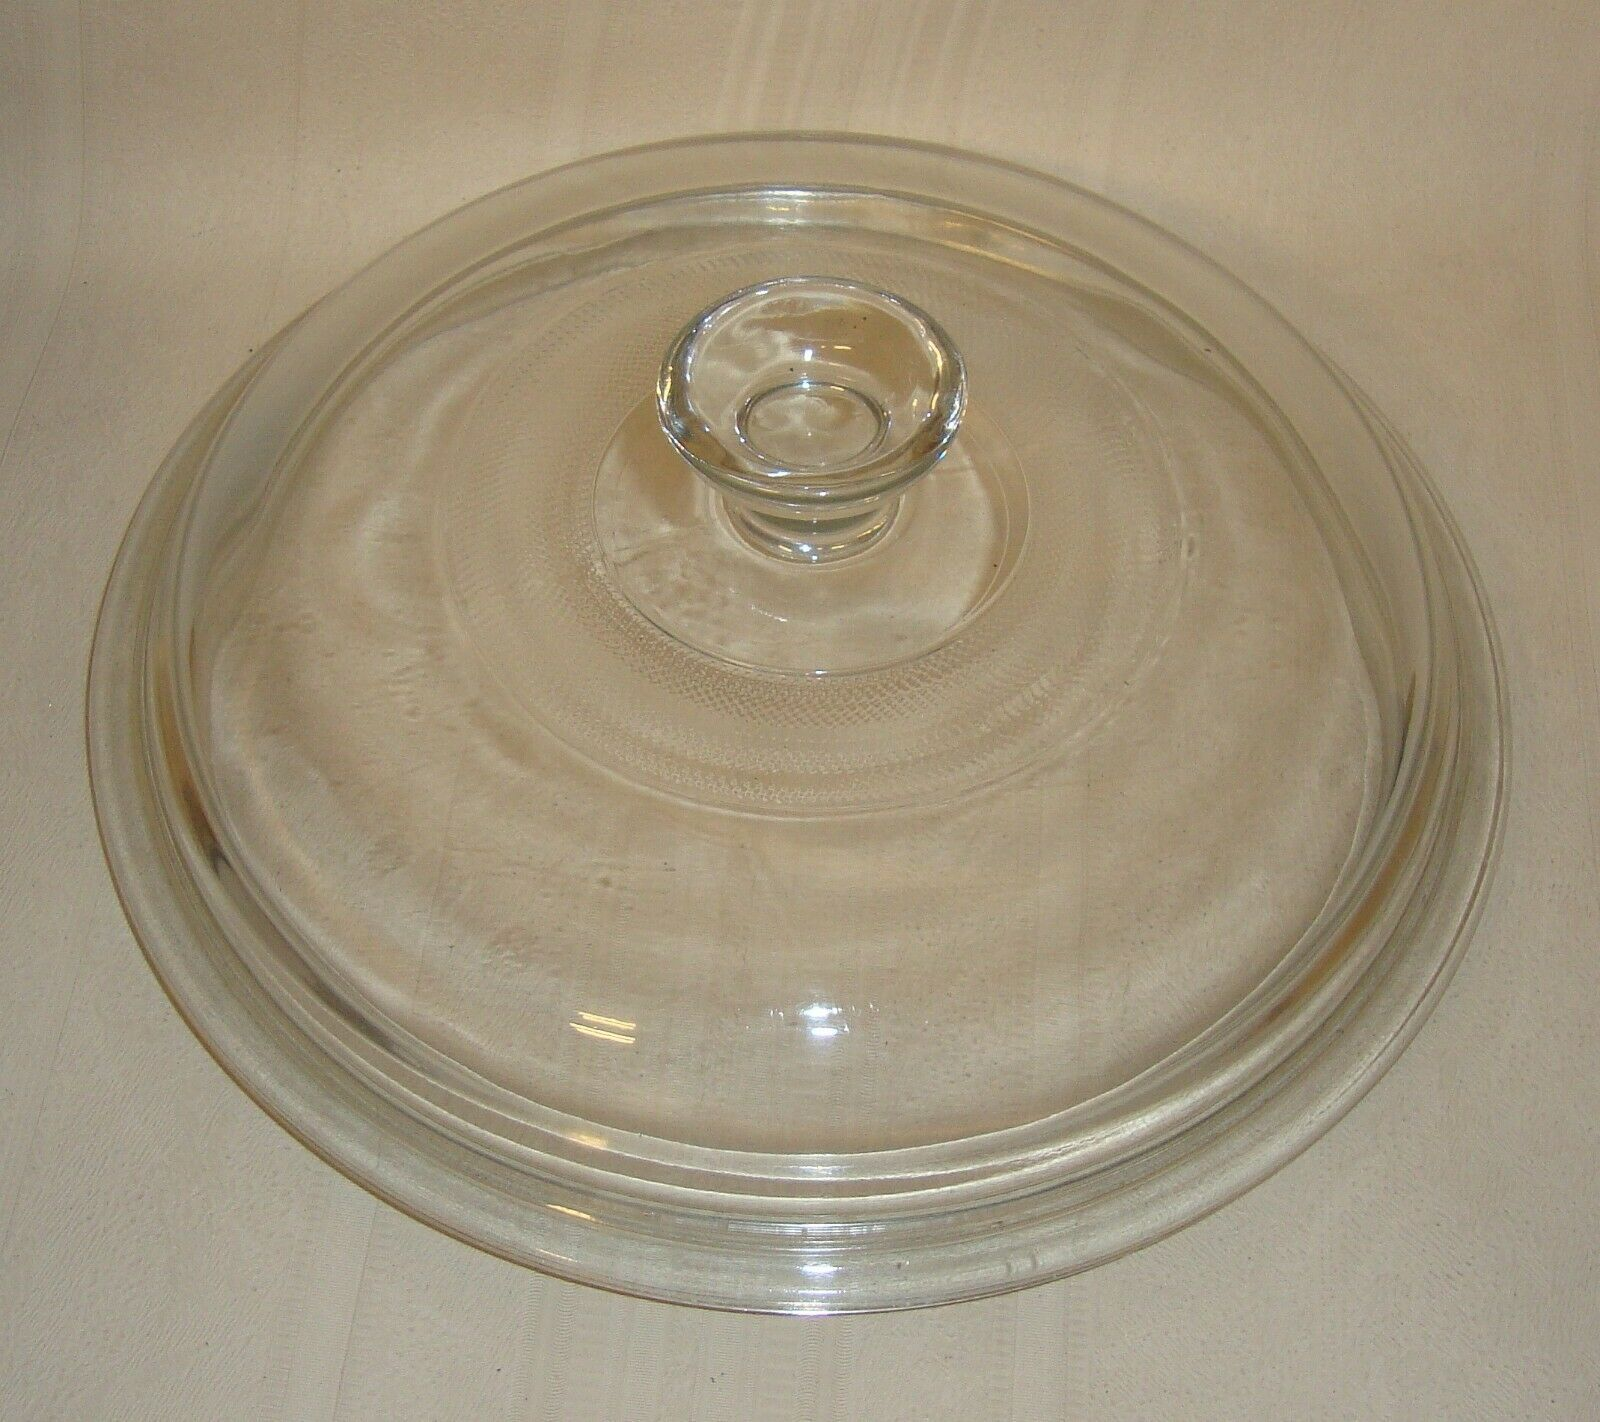 "Primary image for Rival Glass Lid Cover 7 3/4""  Crock Pot Slow Cooker 3100 3100/2 3120 3150/2 3250"